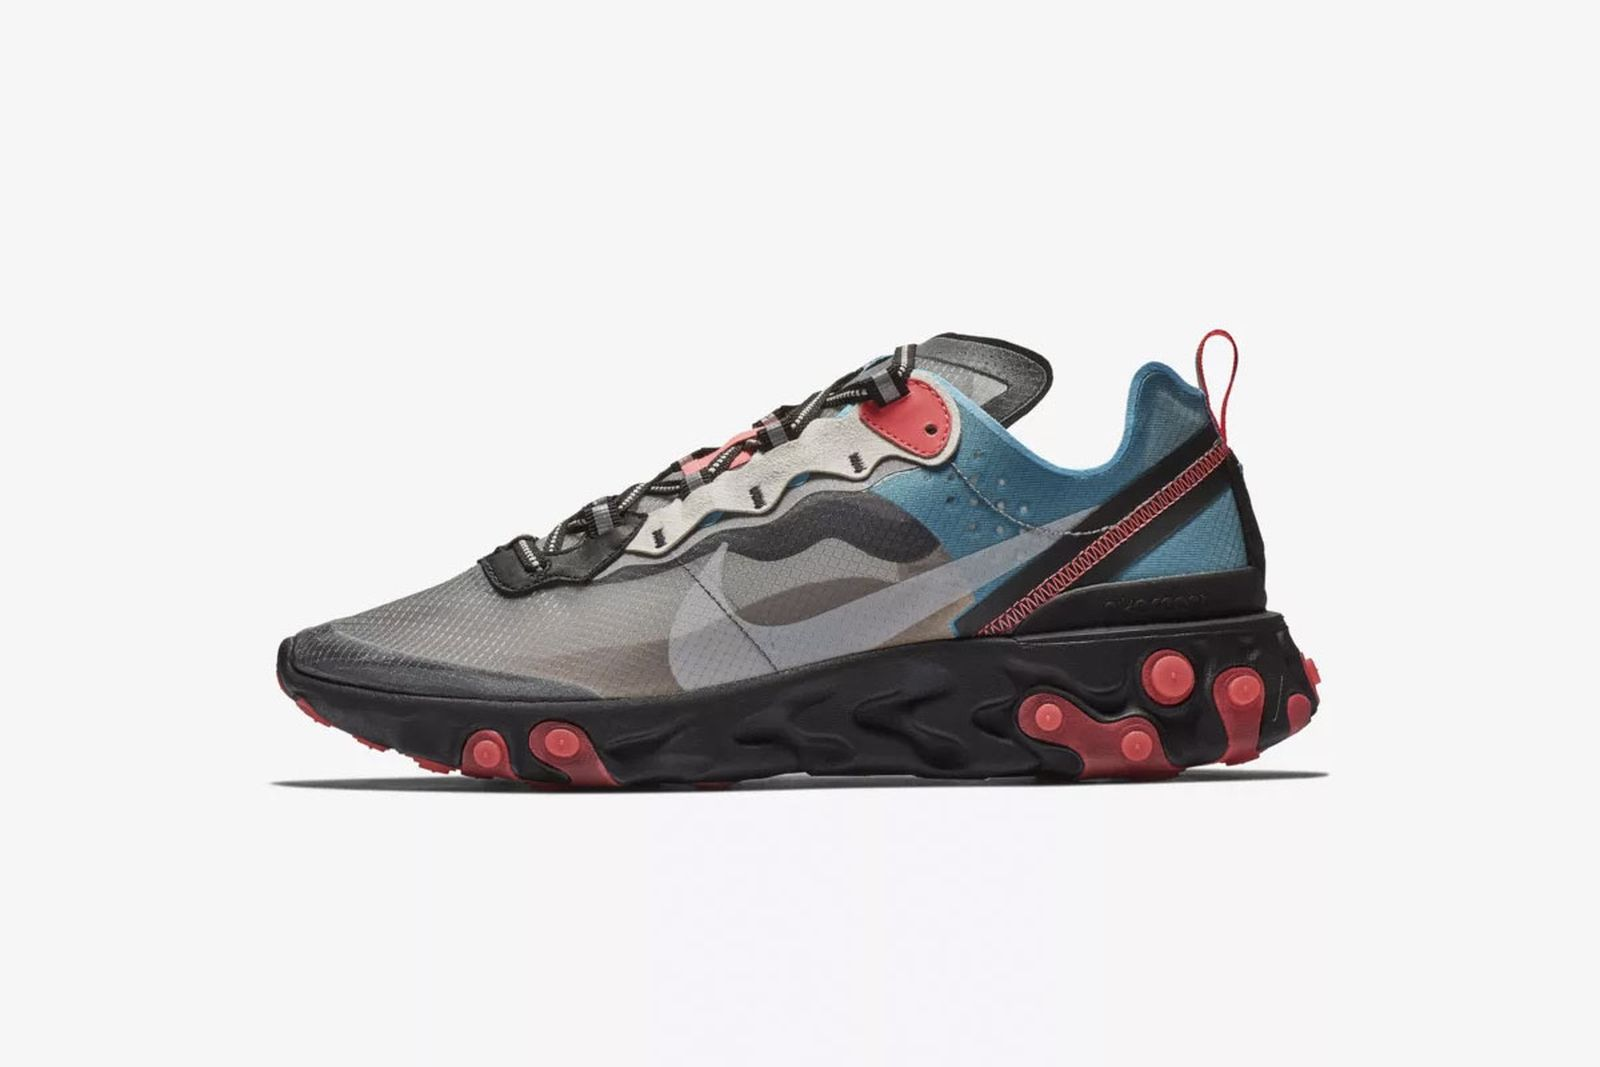 nike react element 87 release date price black red